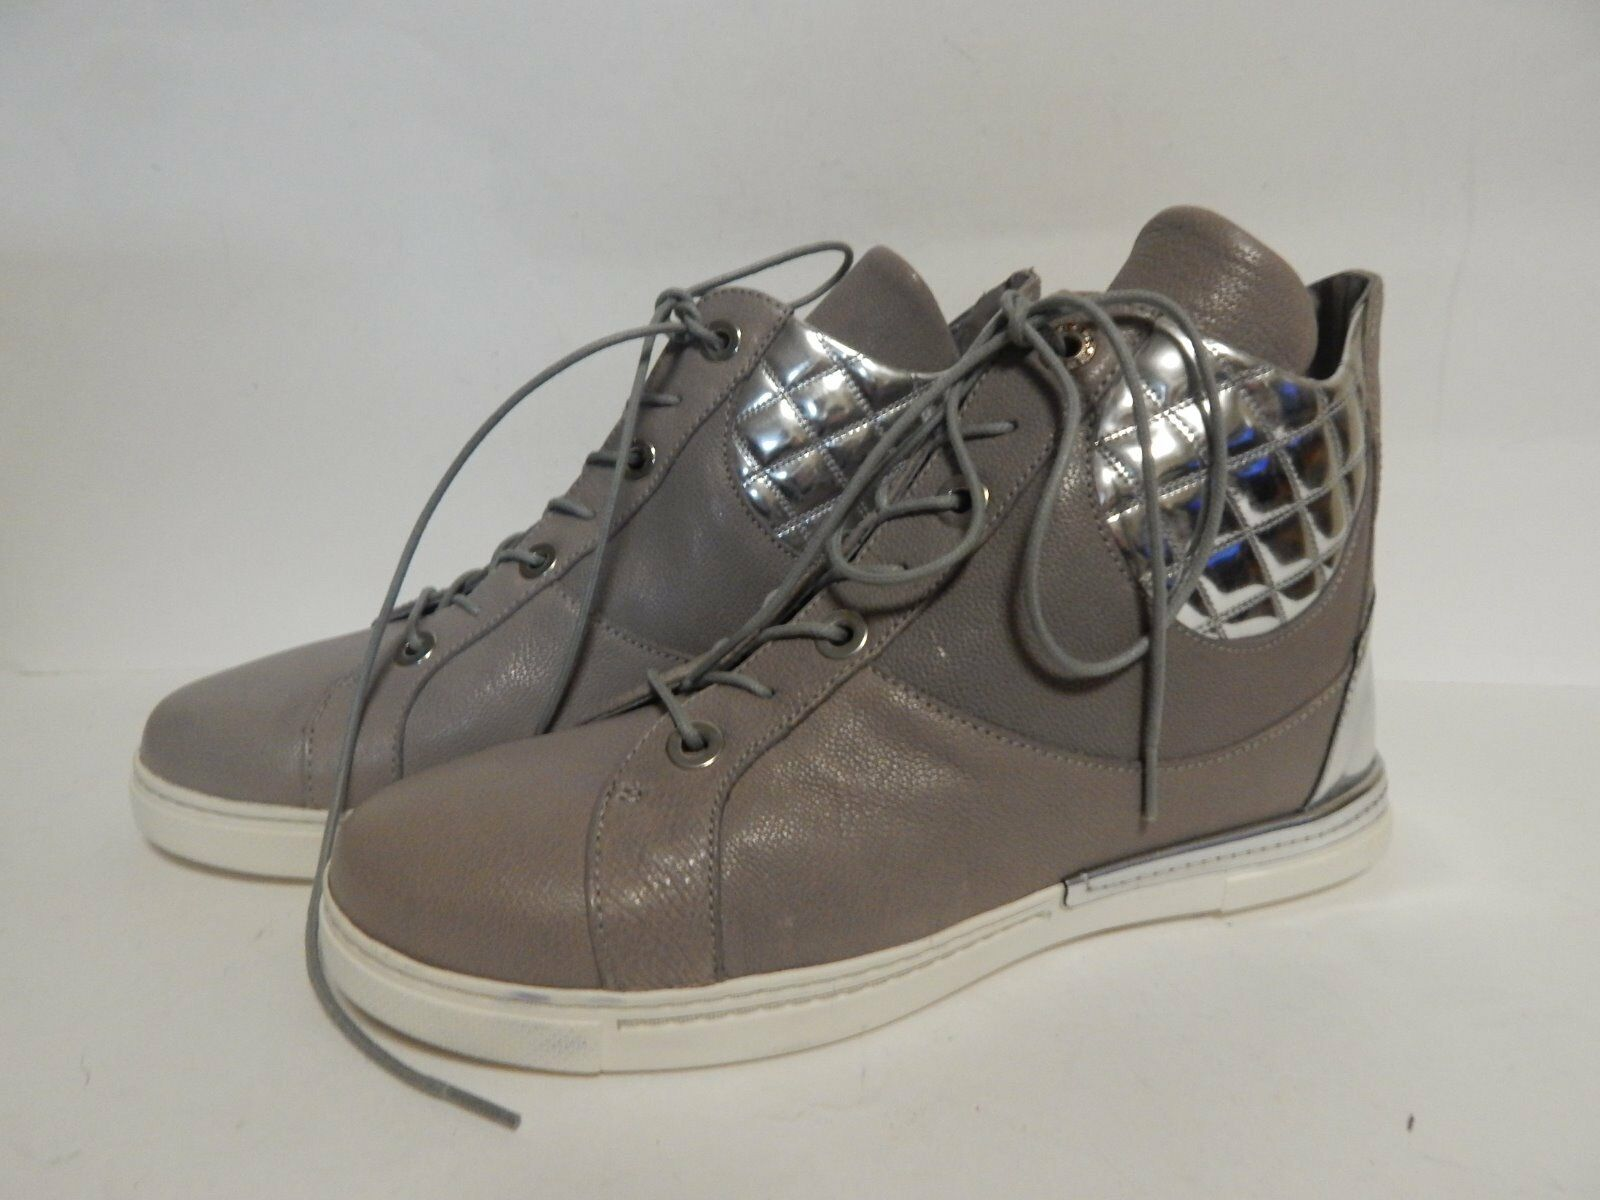 Stuart Weitzman Chairman High Top baskets  Stone Leather New with Box